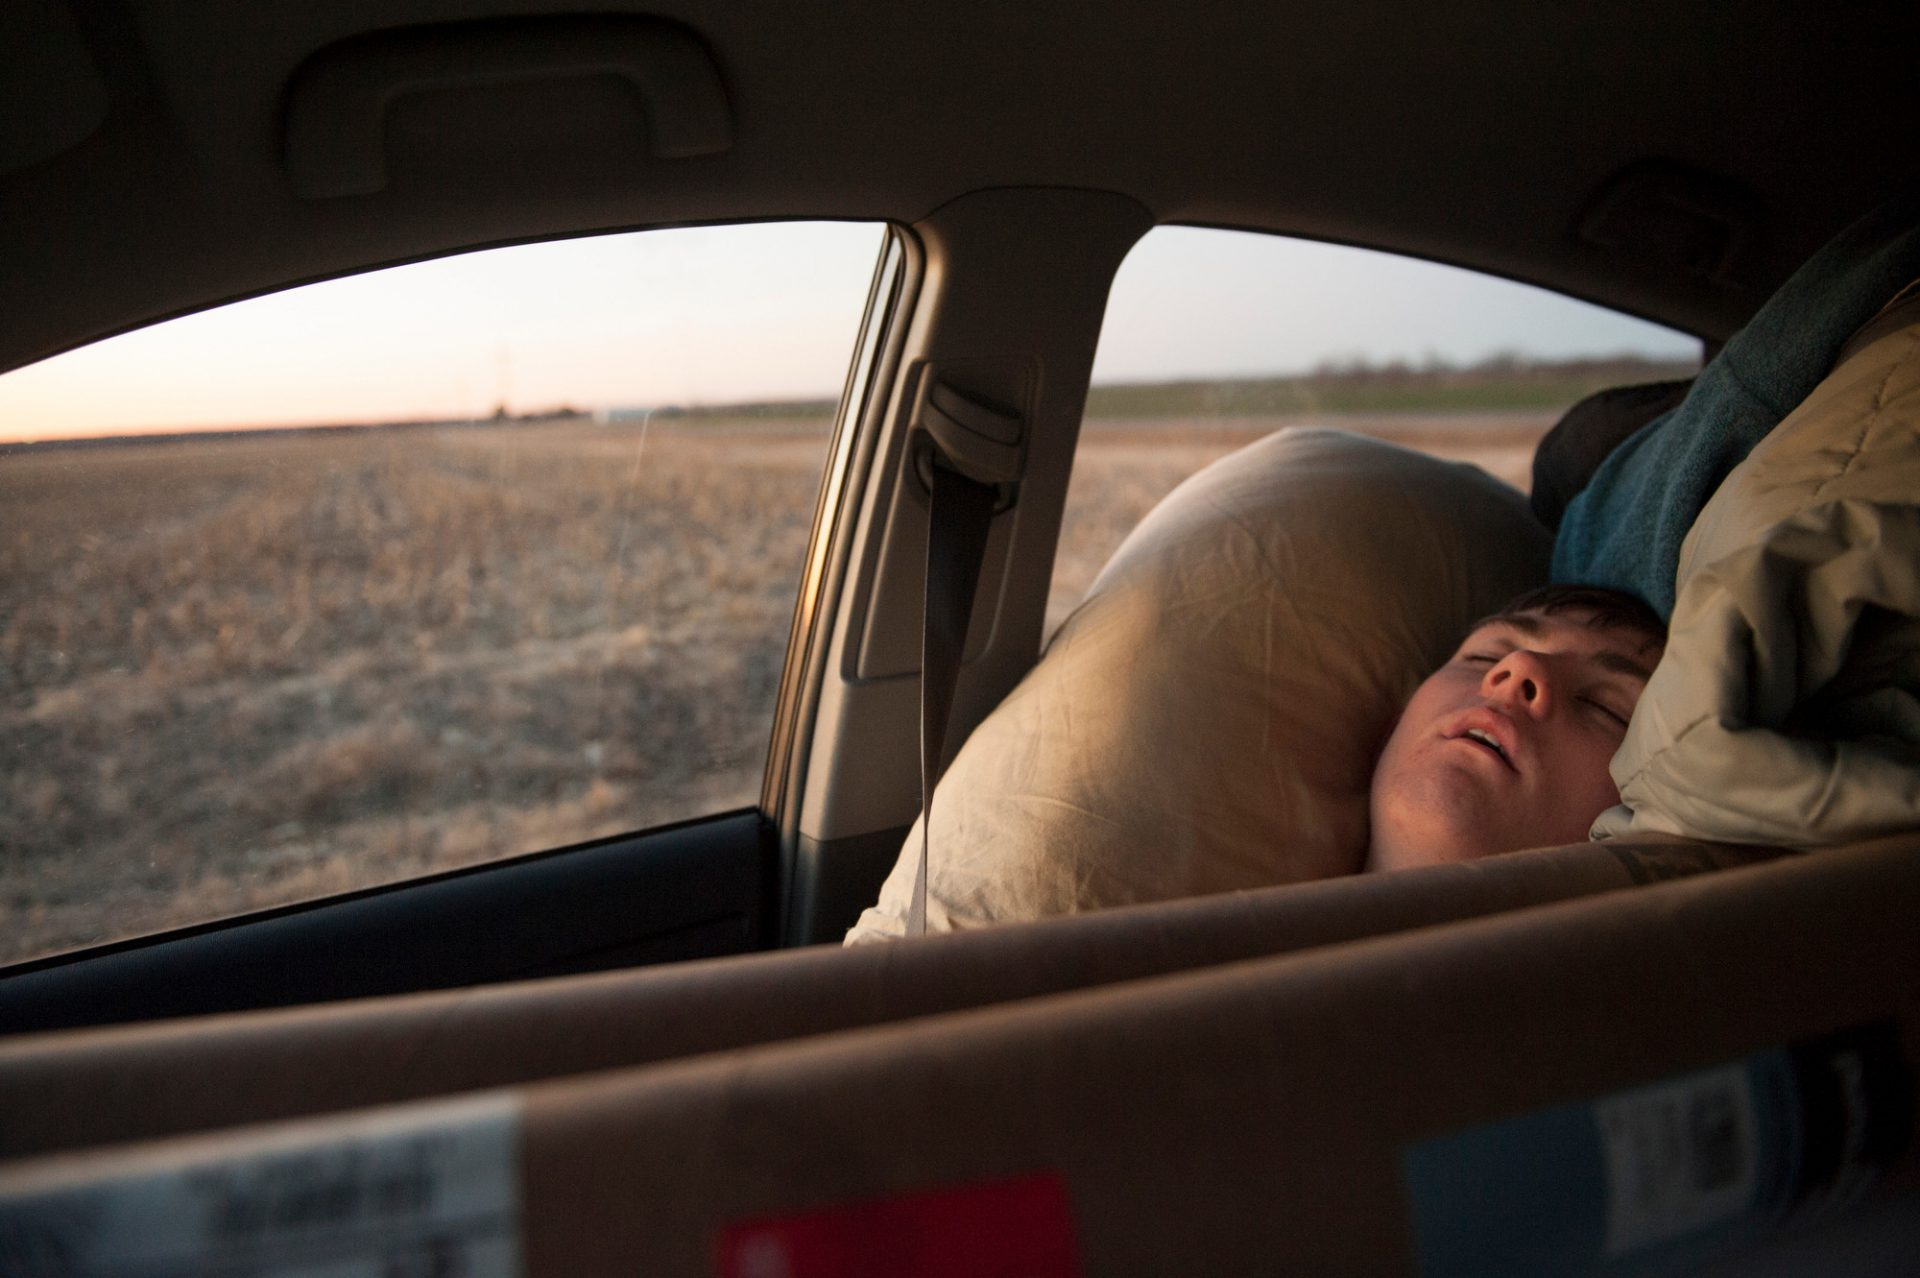 Photo: Cole Sartore sleeps jammed next to rolls of background paper on a road trip.